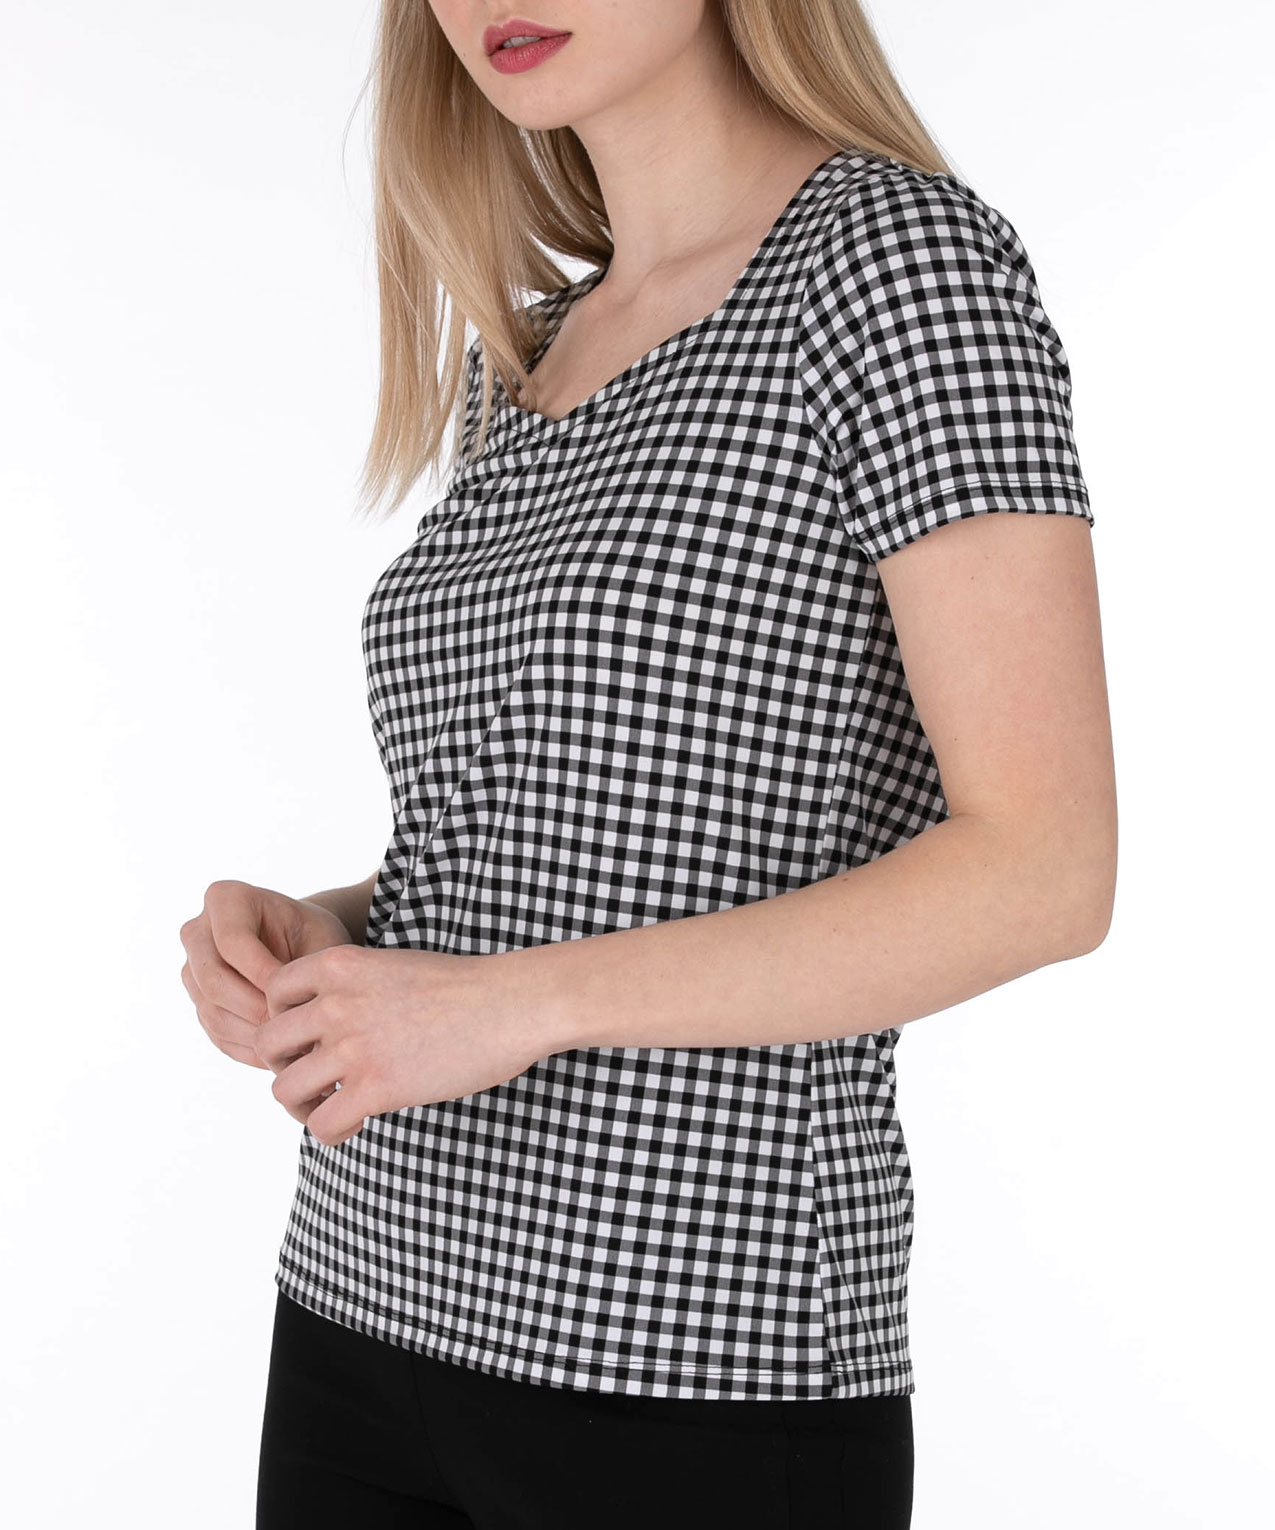 Sweetheart Neck Short Sleeve Top, Black/White, hi-res